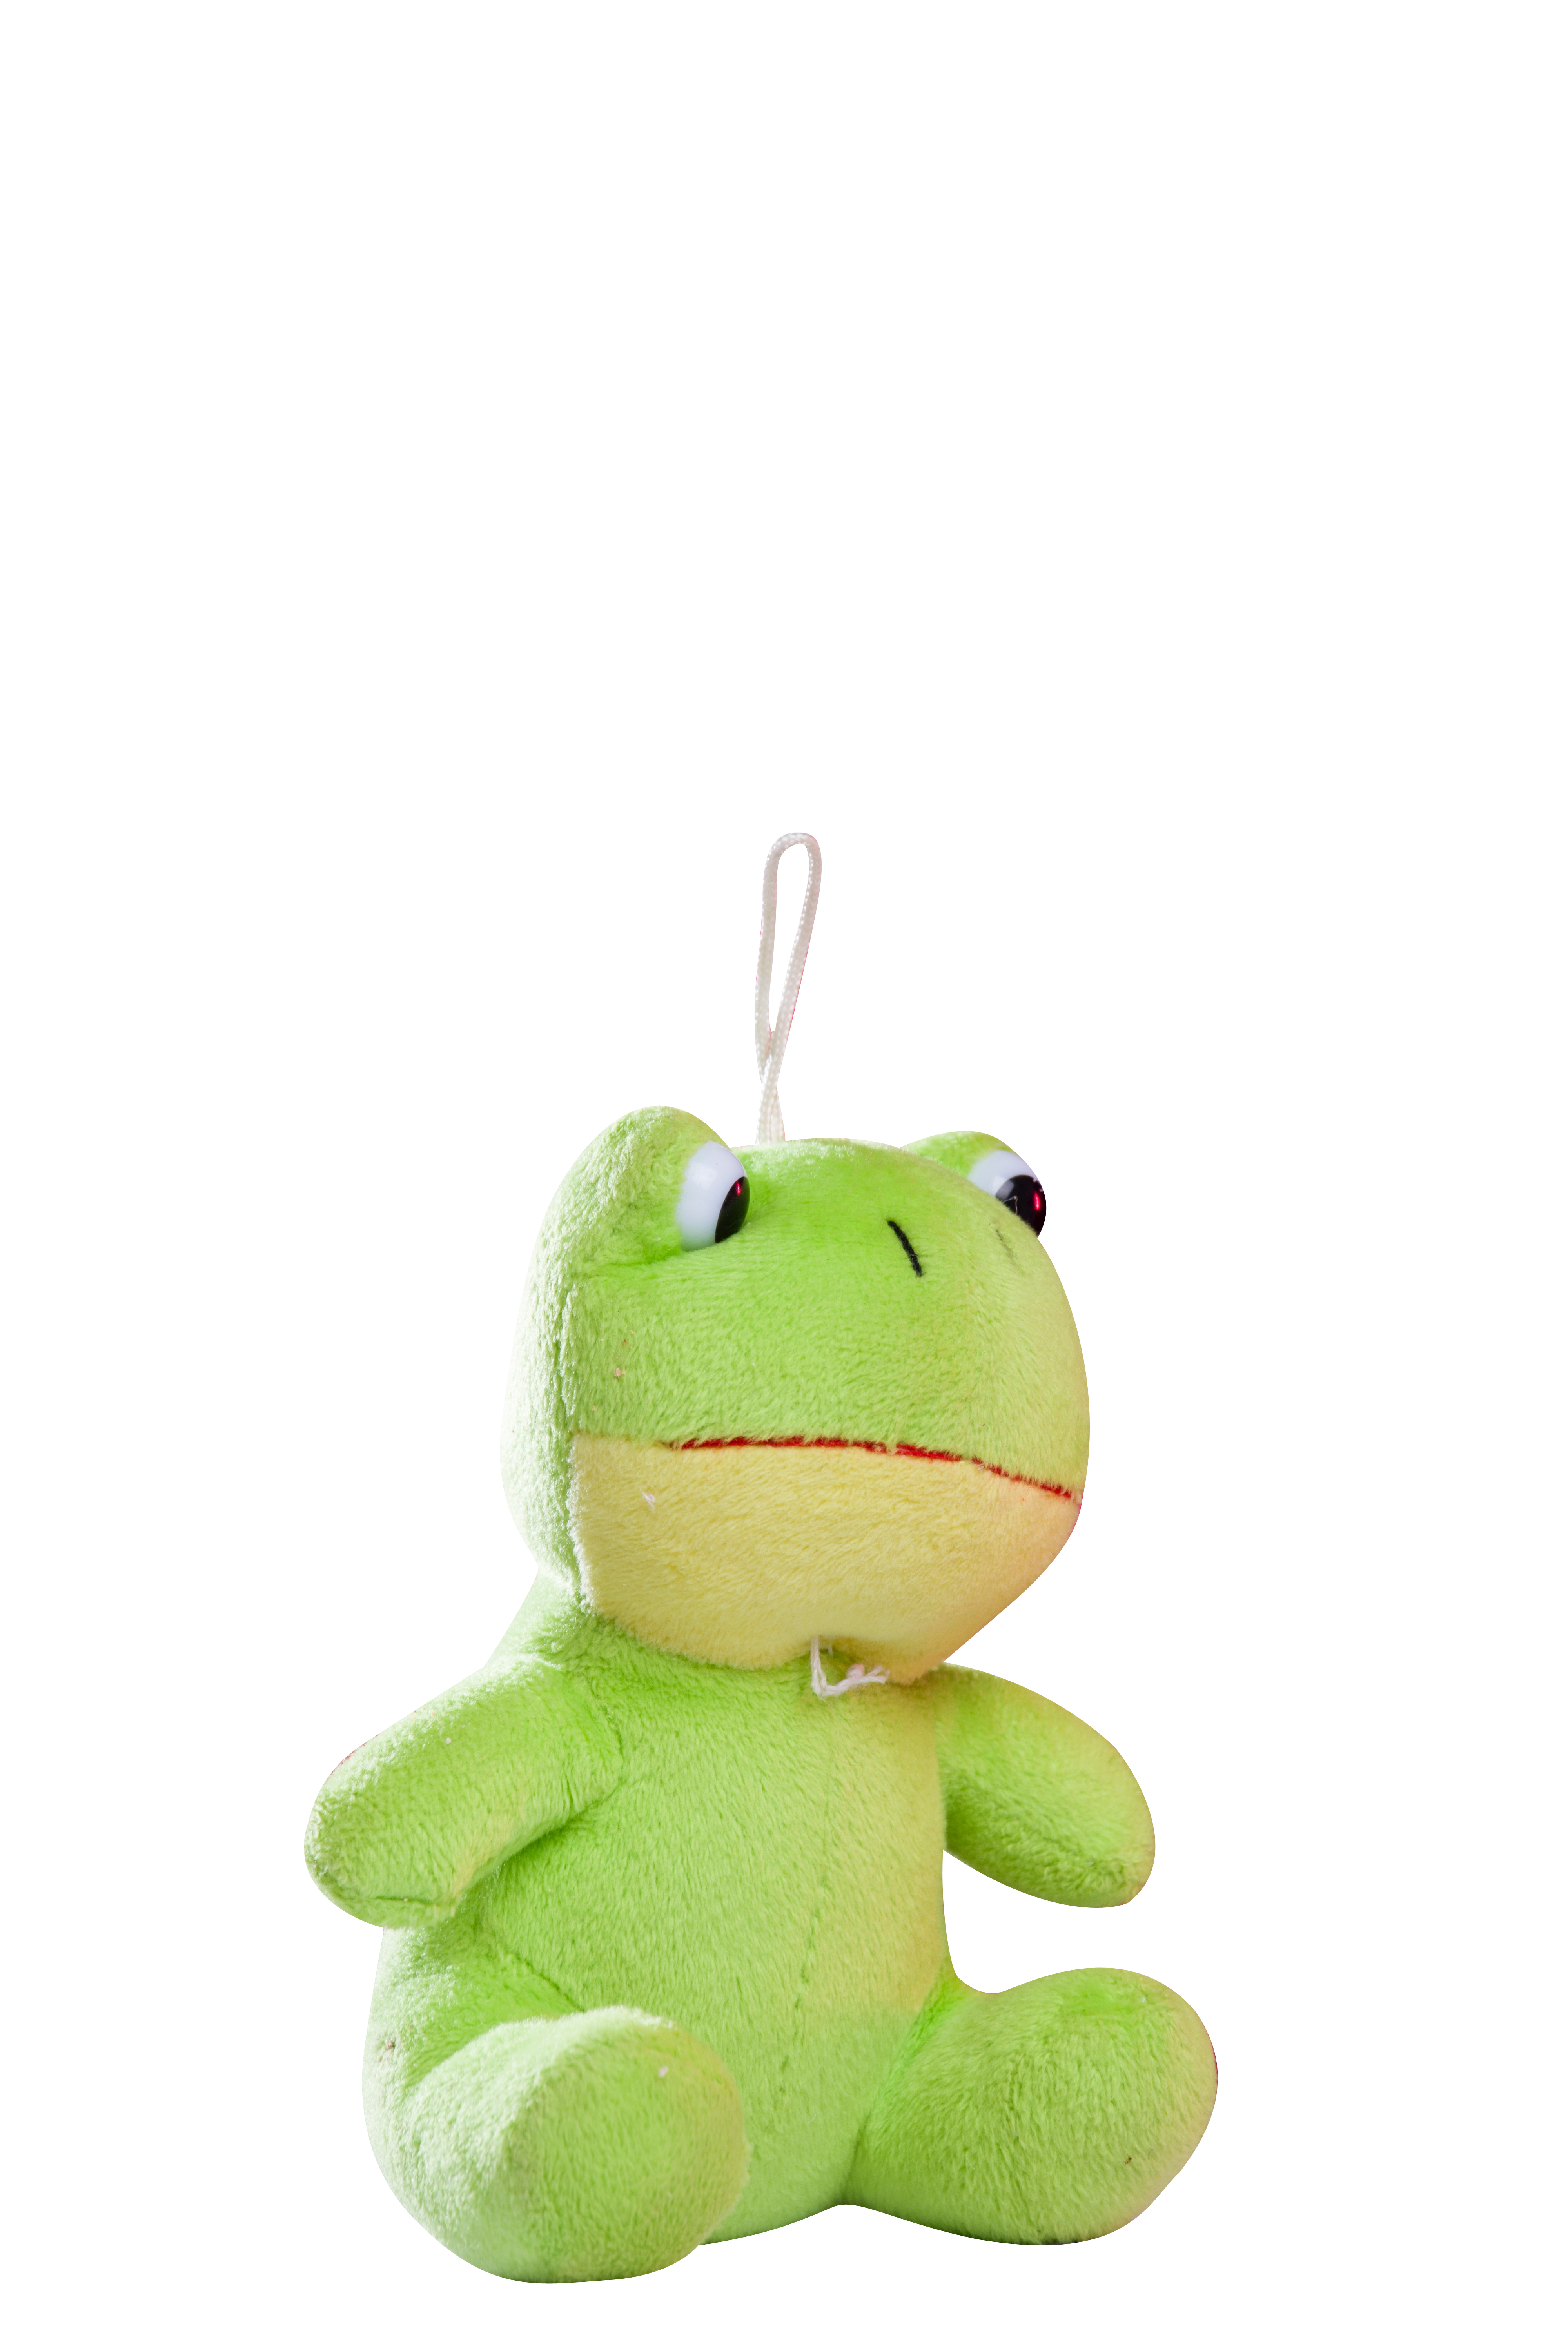 Frog Plush Toy Transparent Background PNG